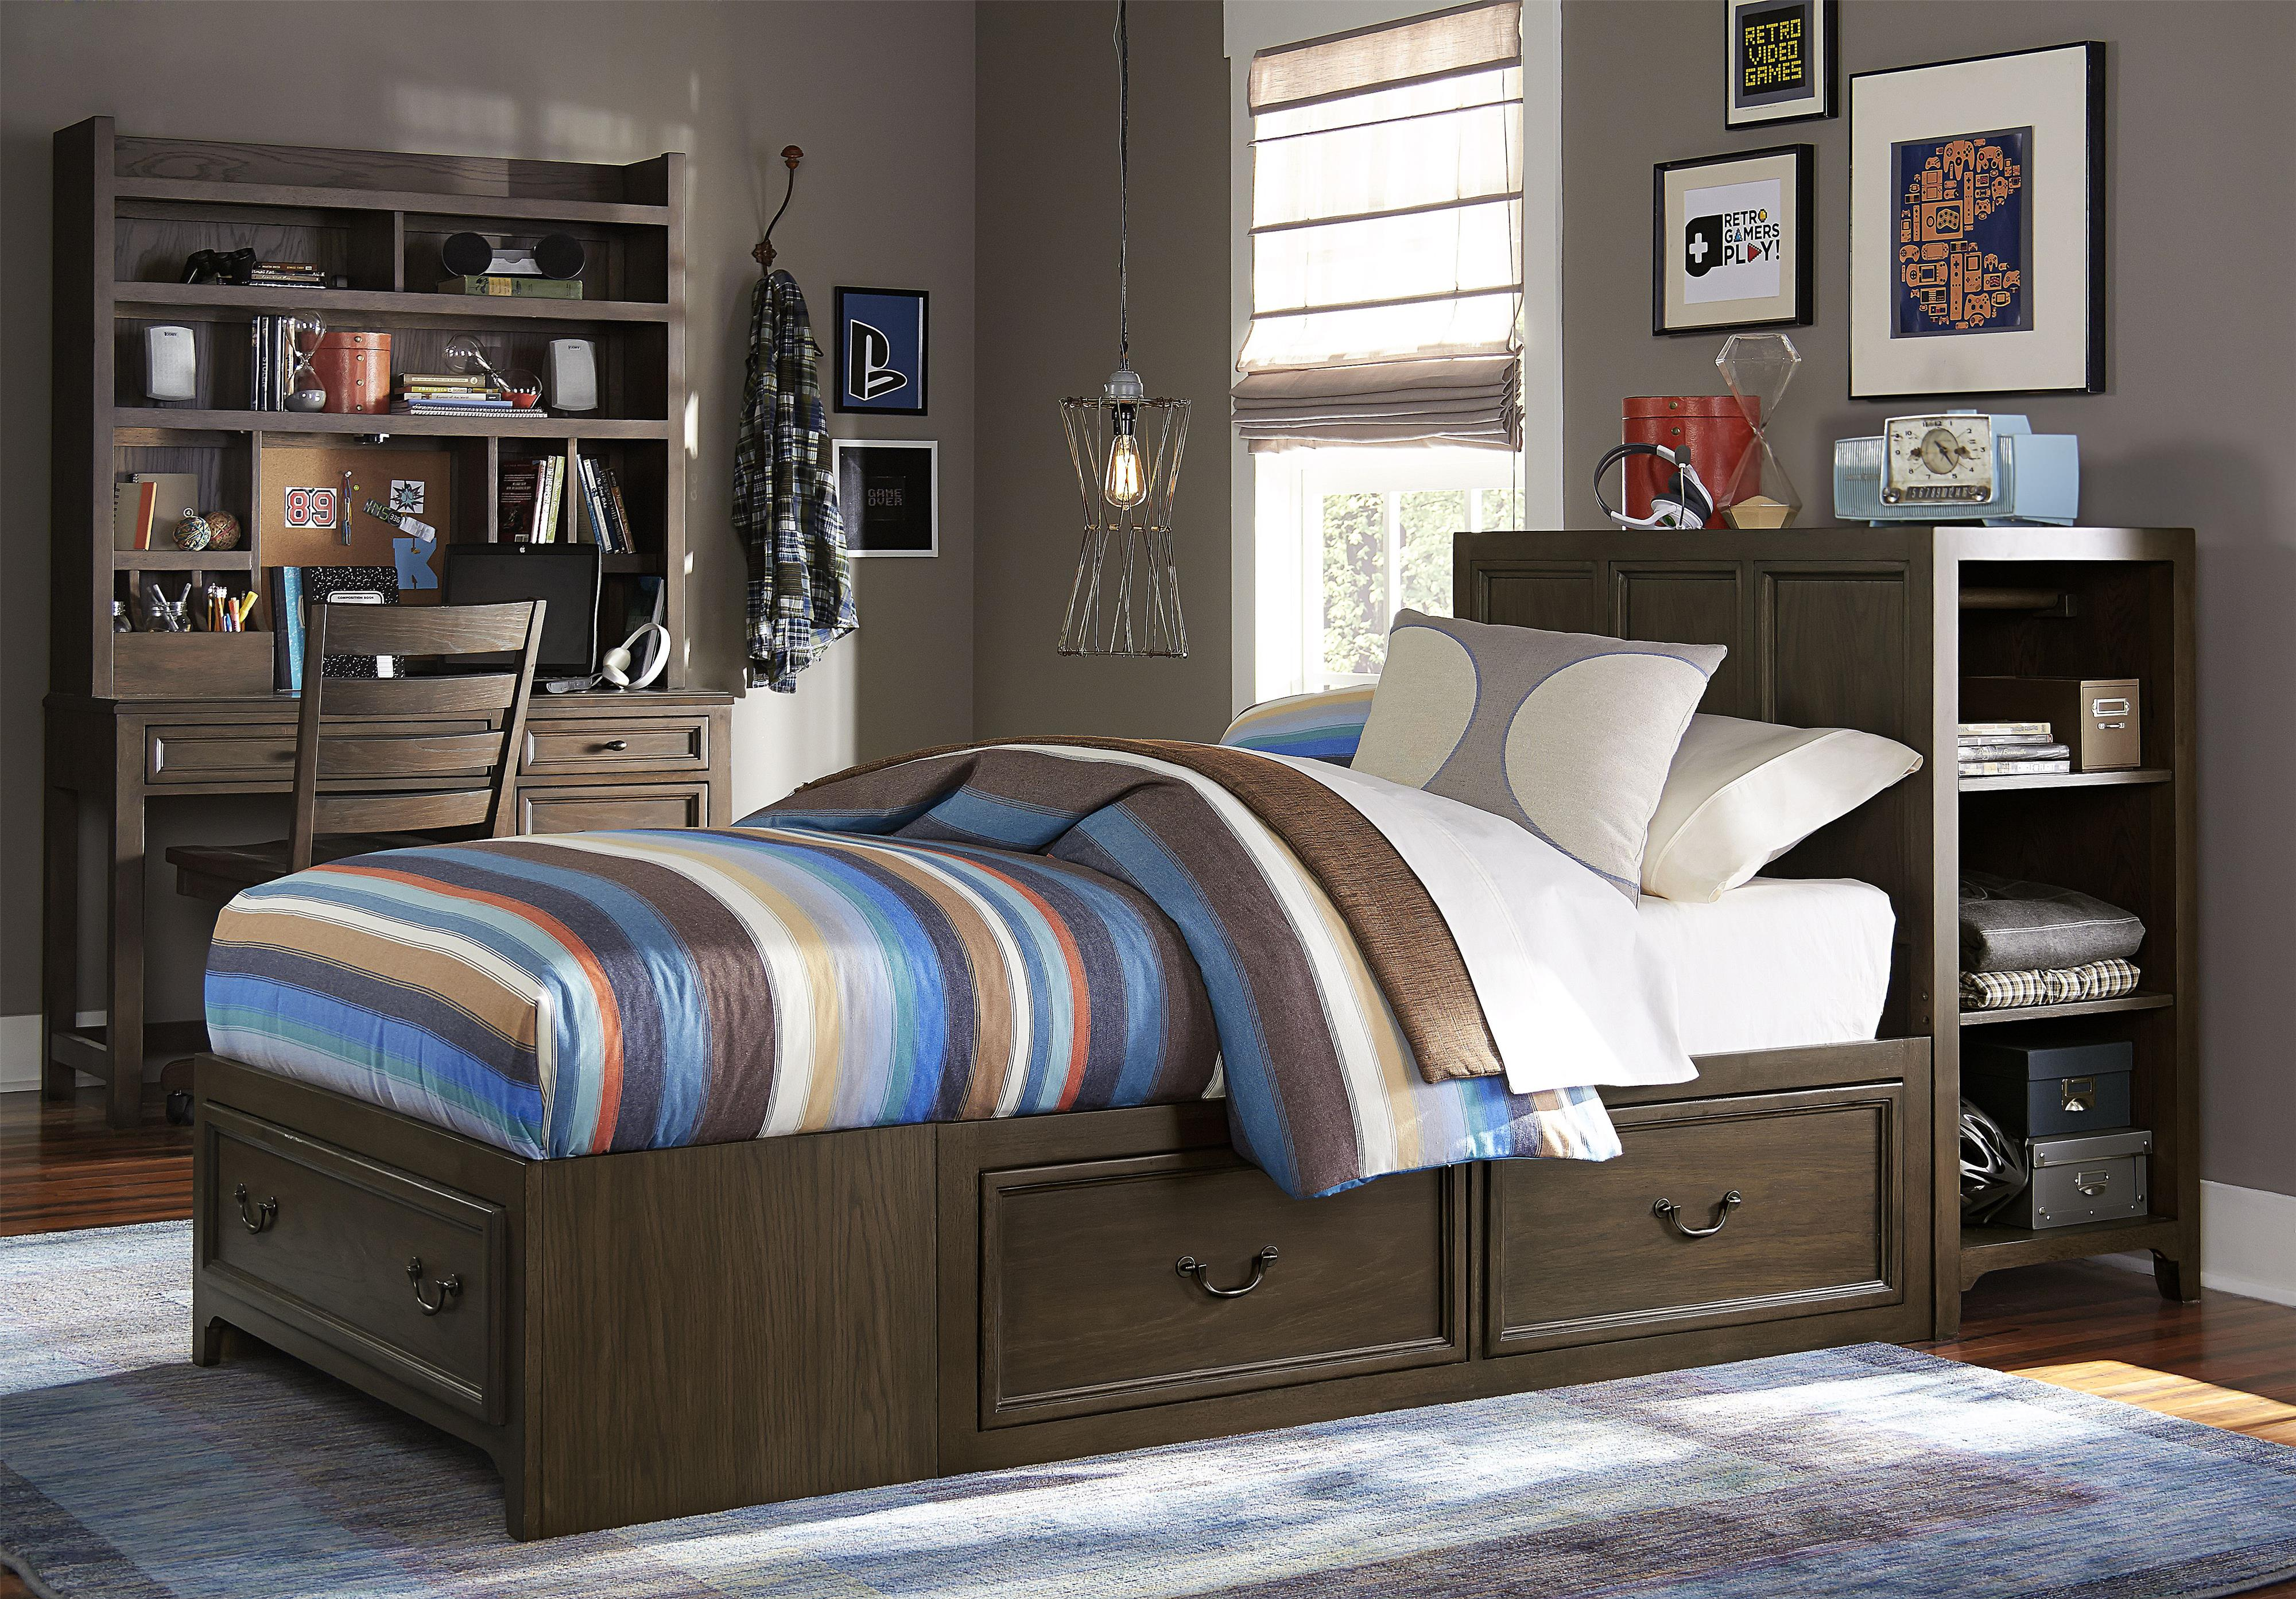 Legacy Classic Kids Kenwood Twin Bedroom Group - Item Number: 4800 T Bedroom Group 1